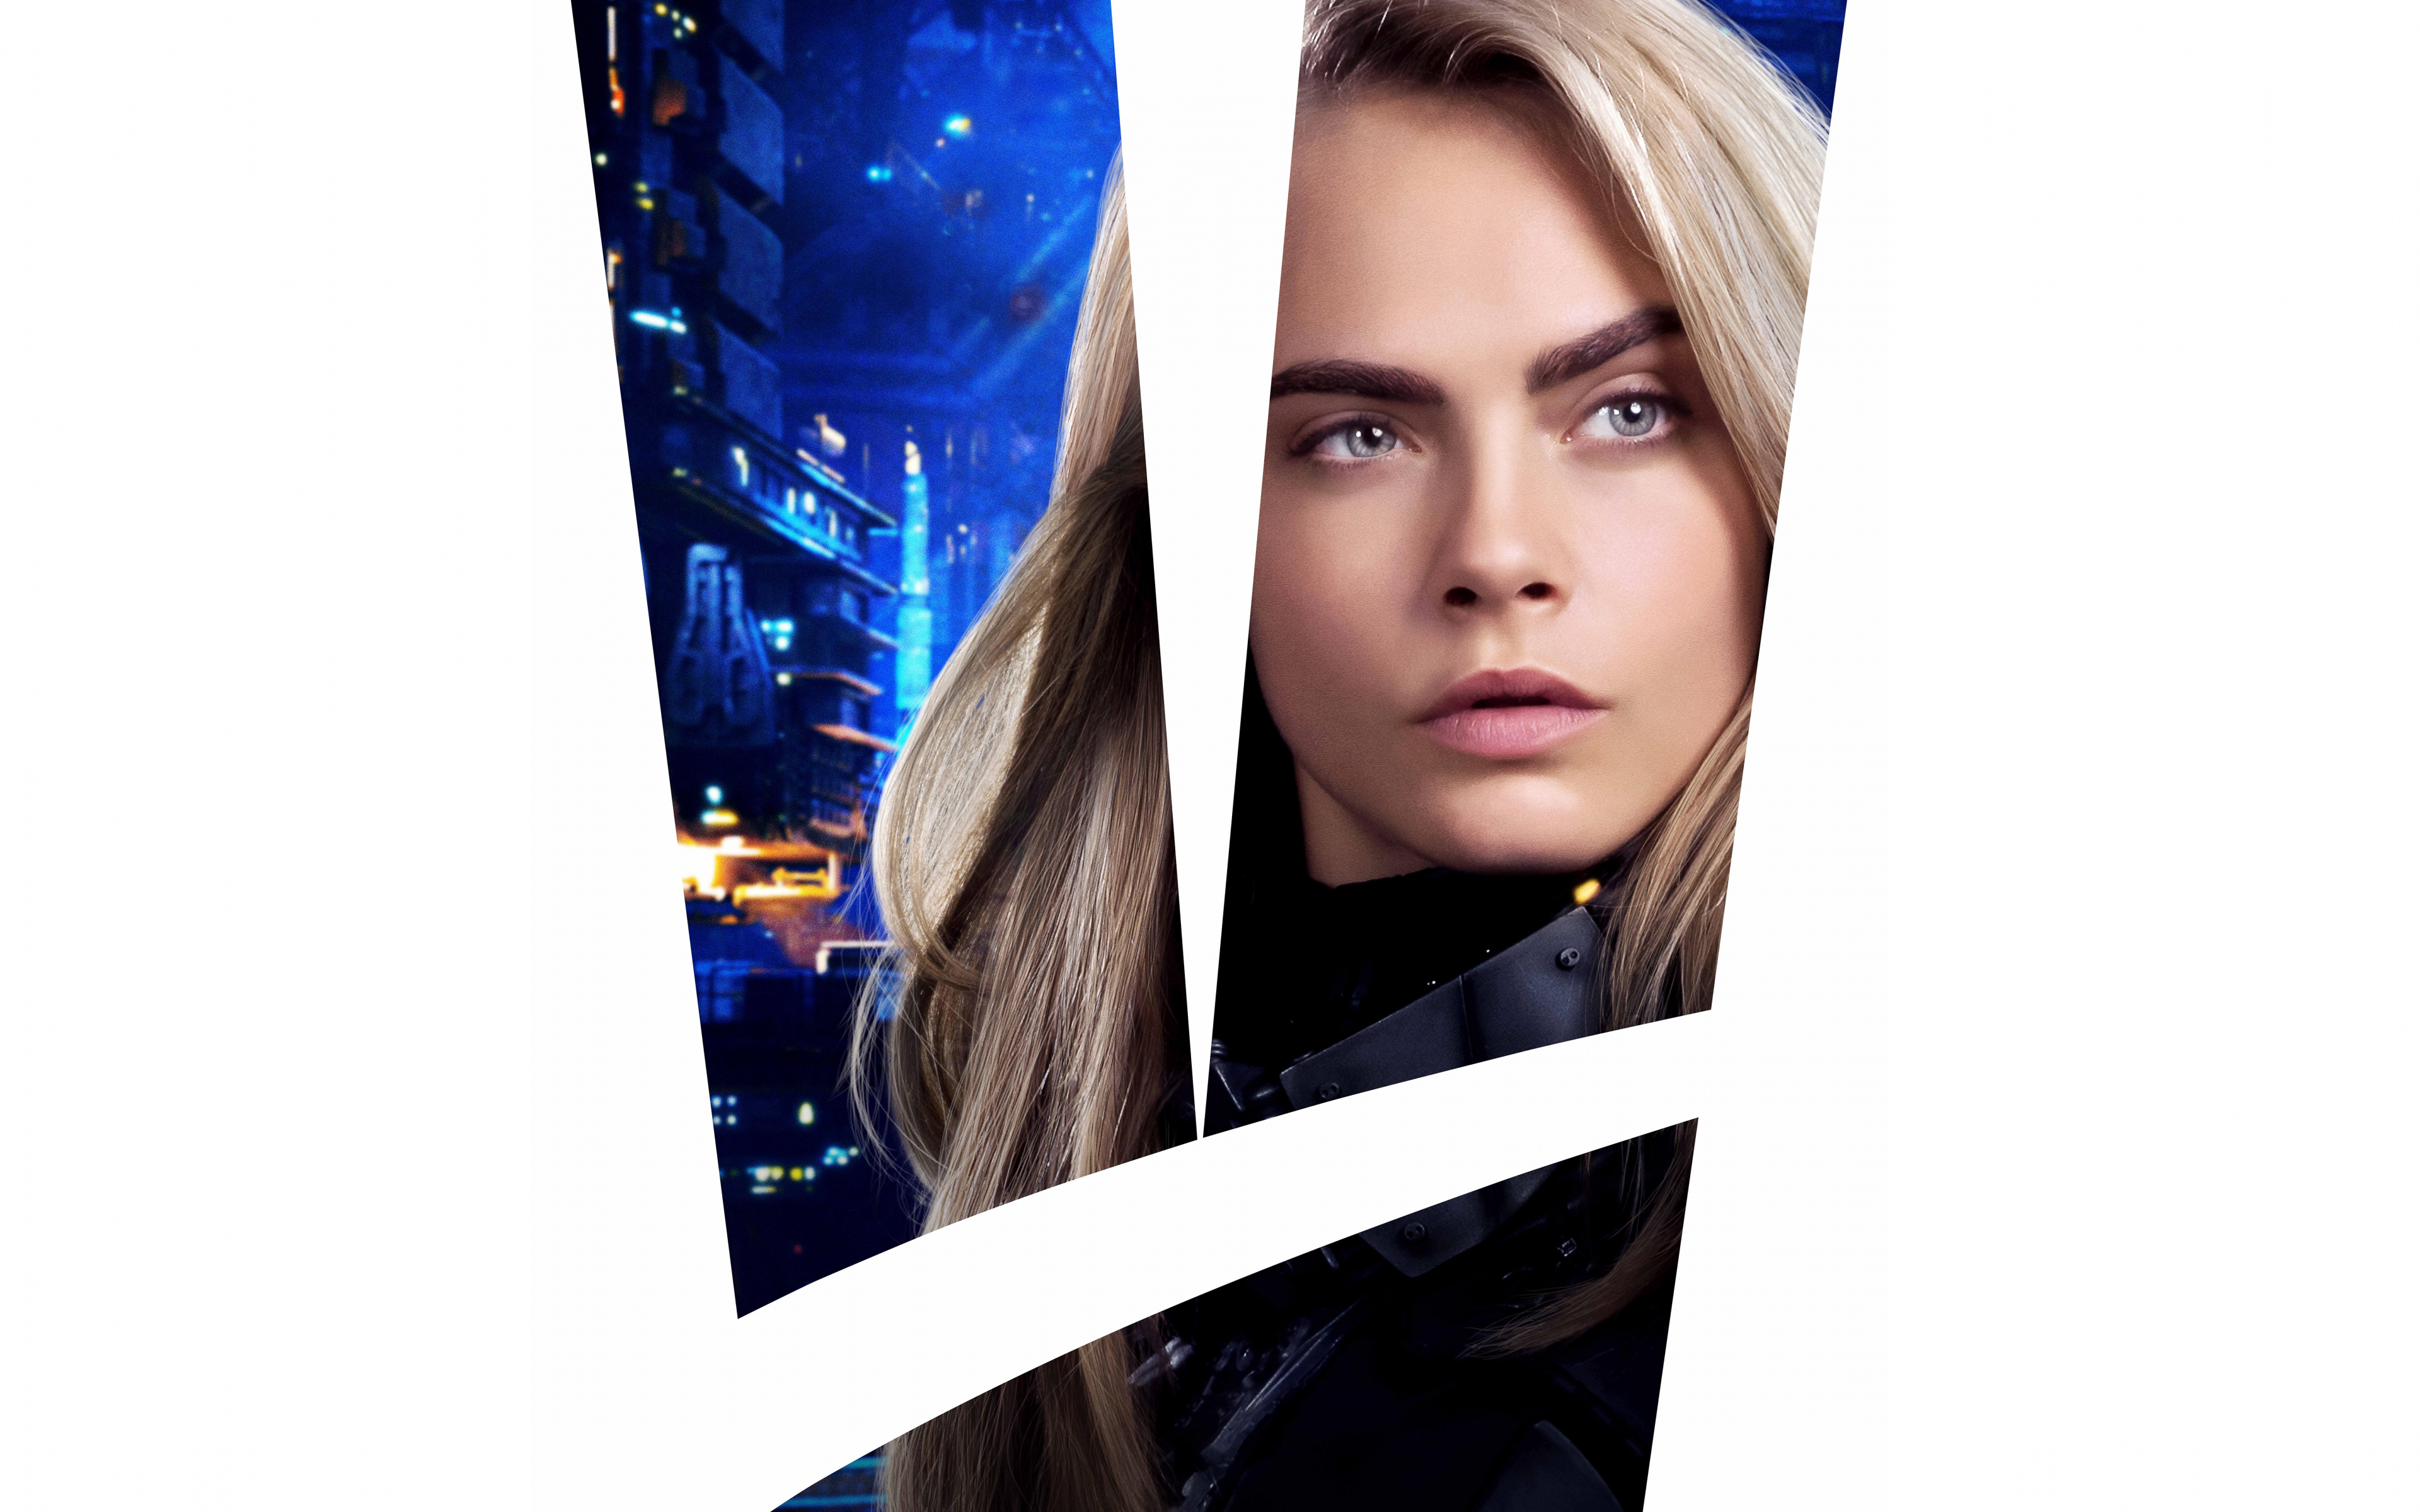 Desktop Wallpaper Cara Delevingne As Laureline In Valerian And The City Of A Thousand Planets Movie Actress Hd Image Picture Background Jweqh6